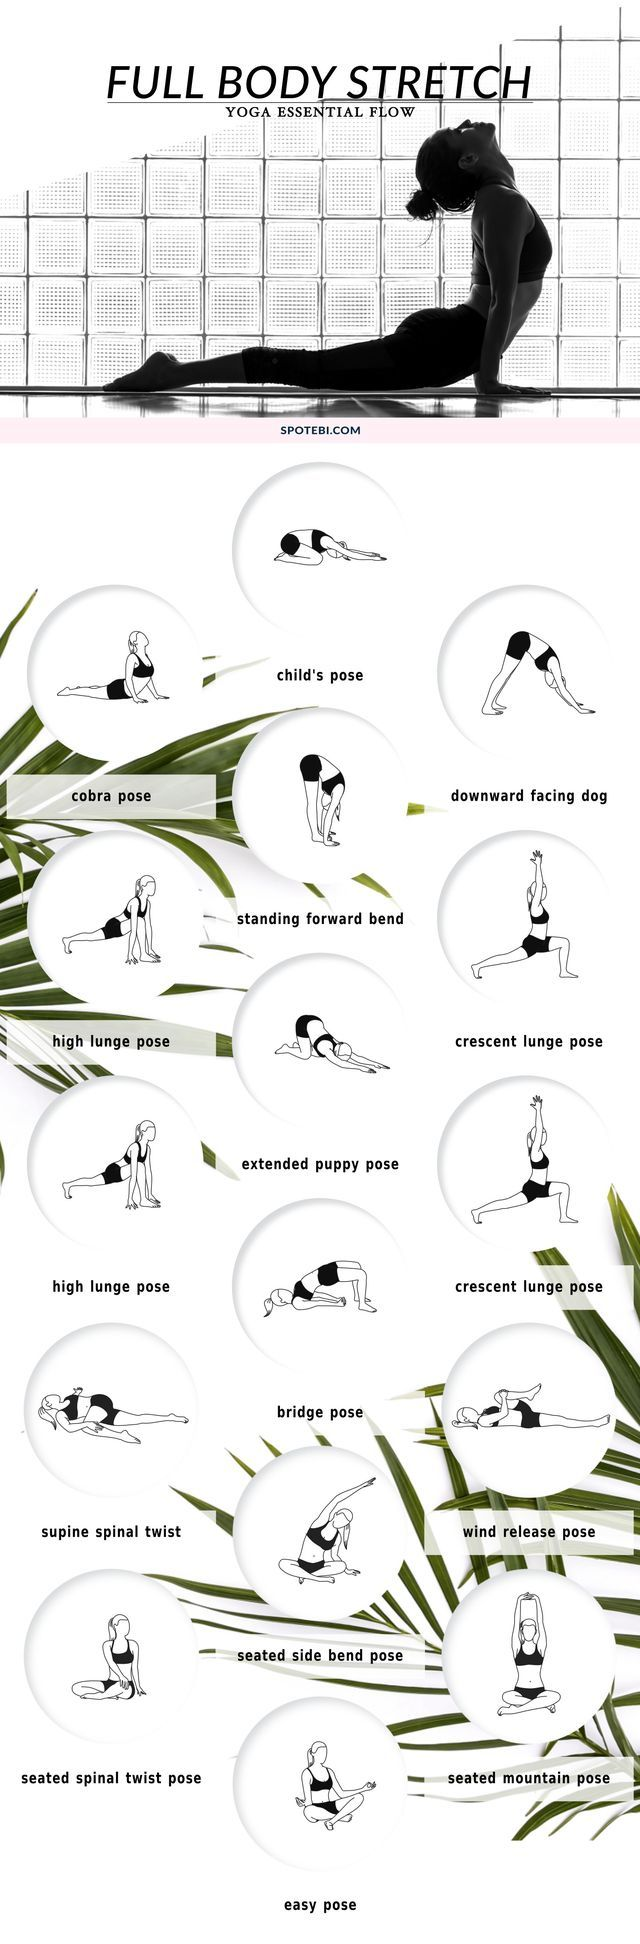 Yoga Essential Flow - Improve your range of motion, increase circulation, and calm your mind with this 10 minute full body stretching flow. The following yoga poses target your tightest muscles, ensuring an amazing total body stretch! http://www.spotebi.com/yoga-sequences/full-body-stretch/